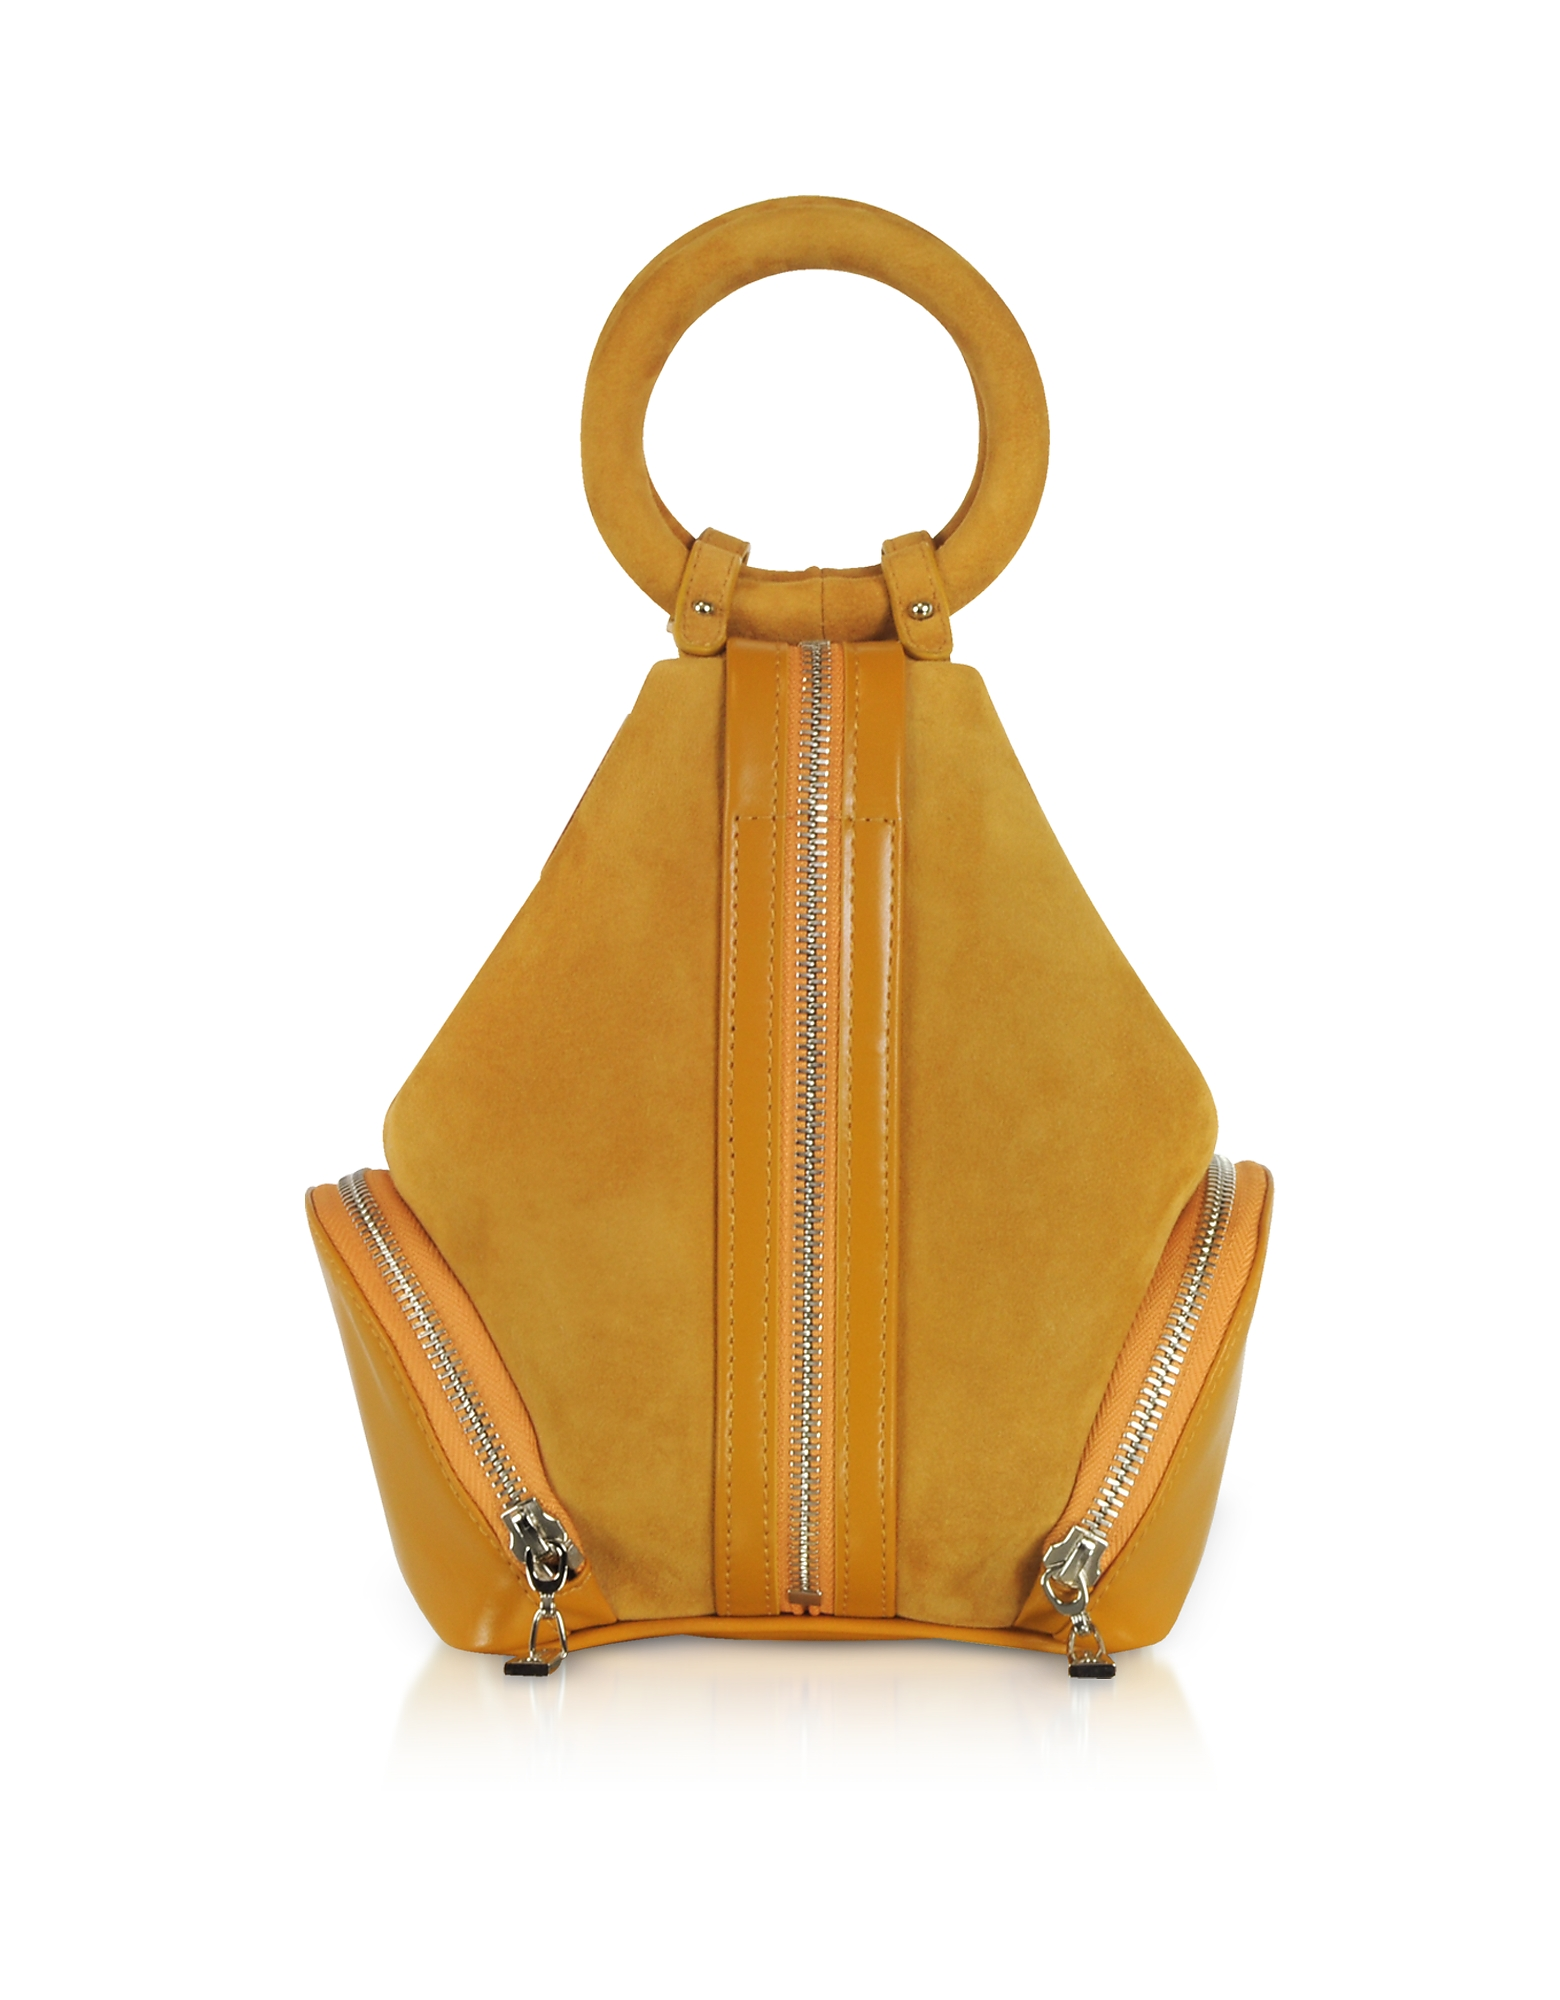 Complet Handbags, Mustard Yellow Suede Eve Micro Bag